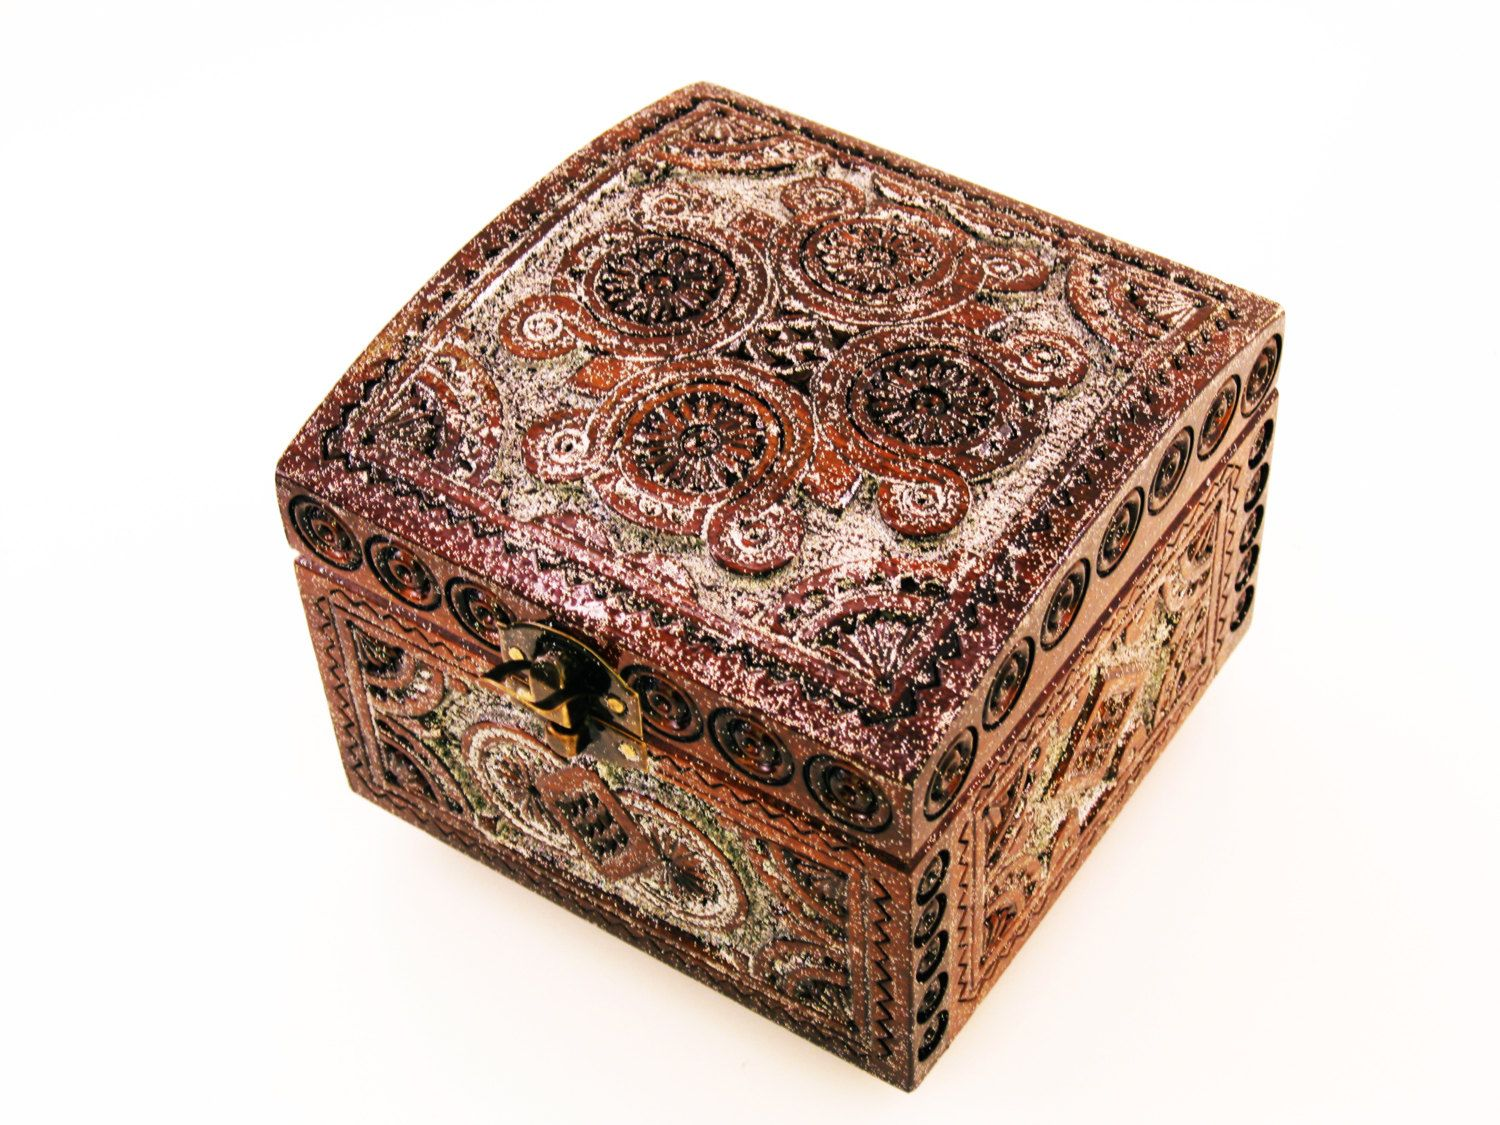 Large Decorative Gift Boxes With Lids Unique Gift Boxes Pretty Large Craft Chip Carving Woodbox Storage